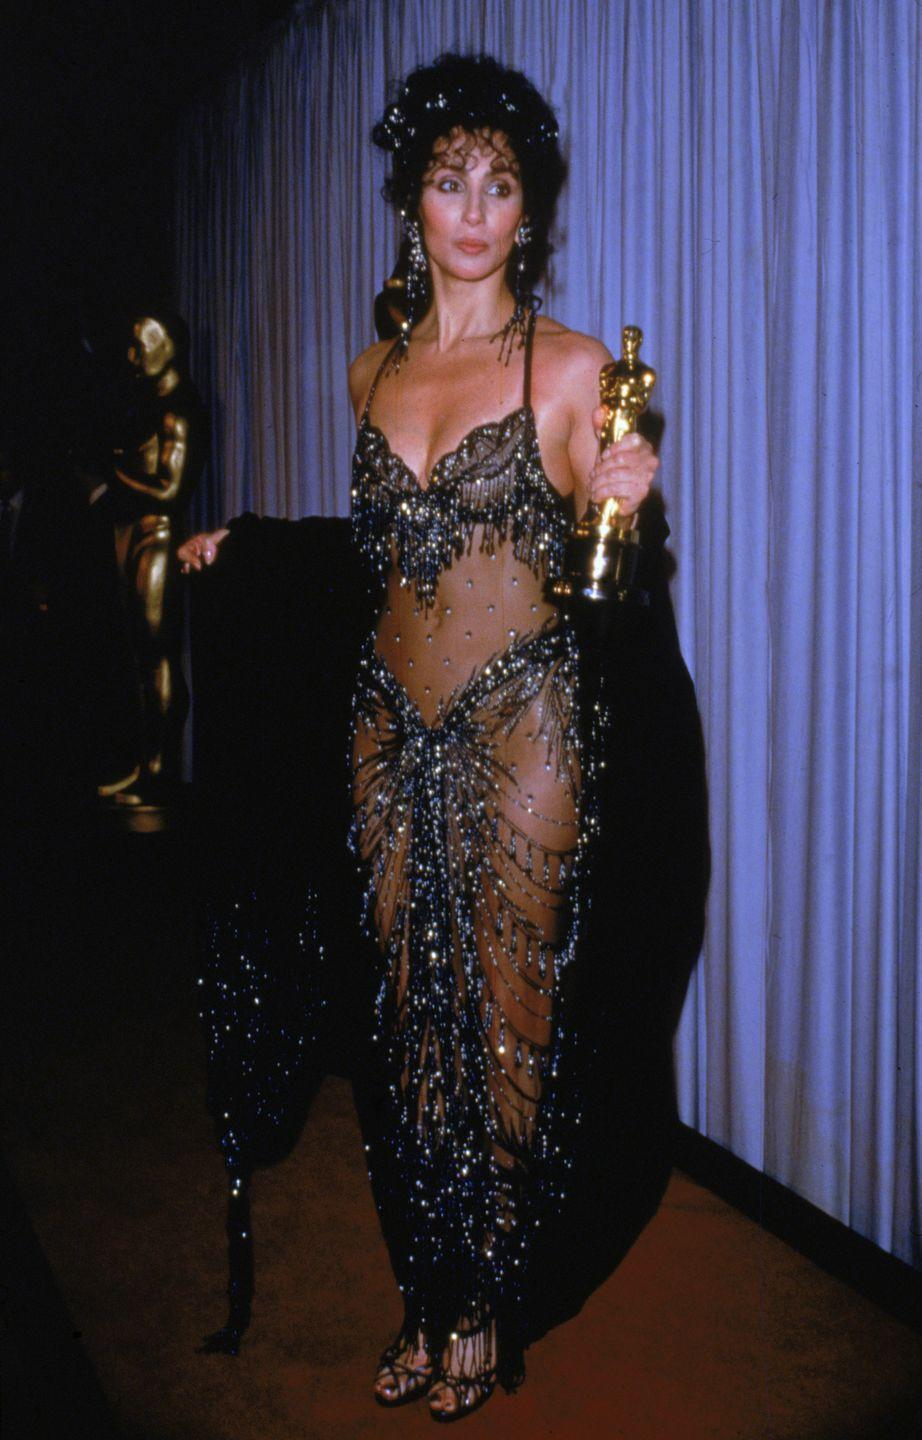 <p>In a sparkling Bob Mackie design at the Oscars winning Best Actress for her role in<em> Moonstruck.</em></p>